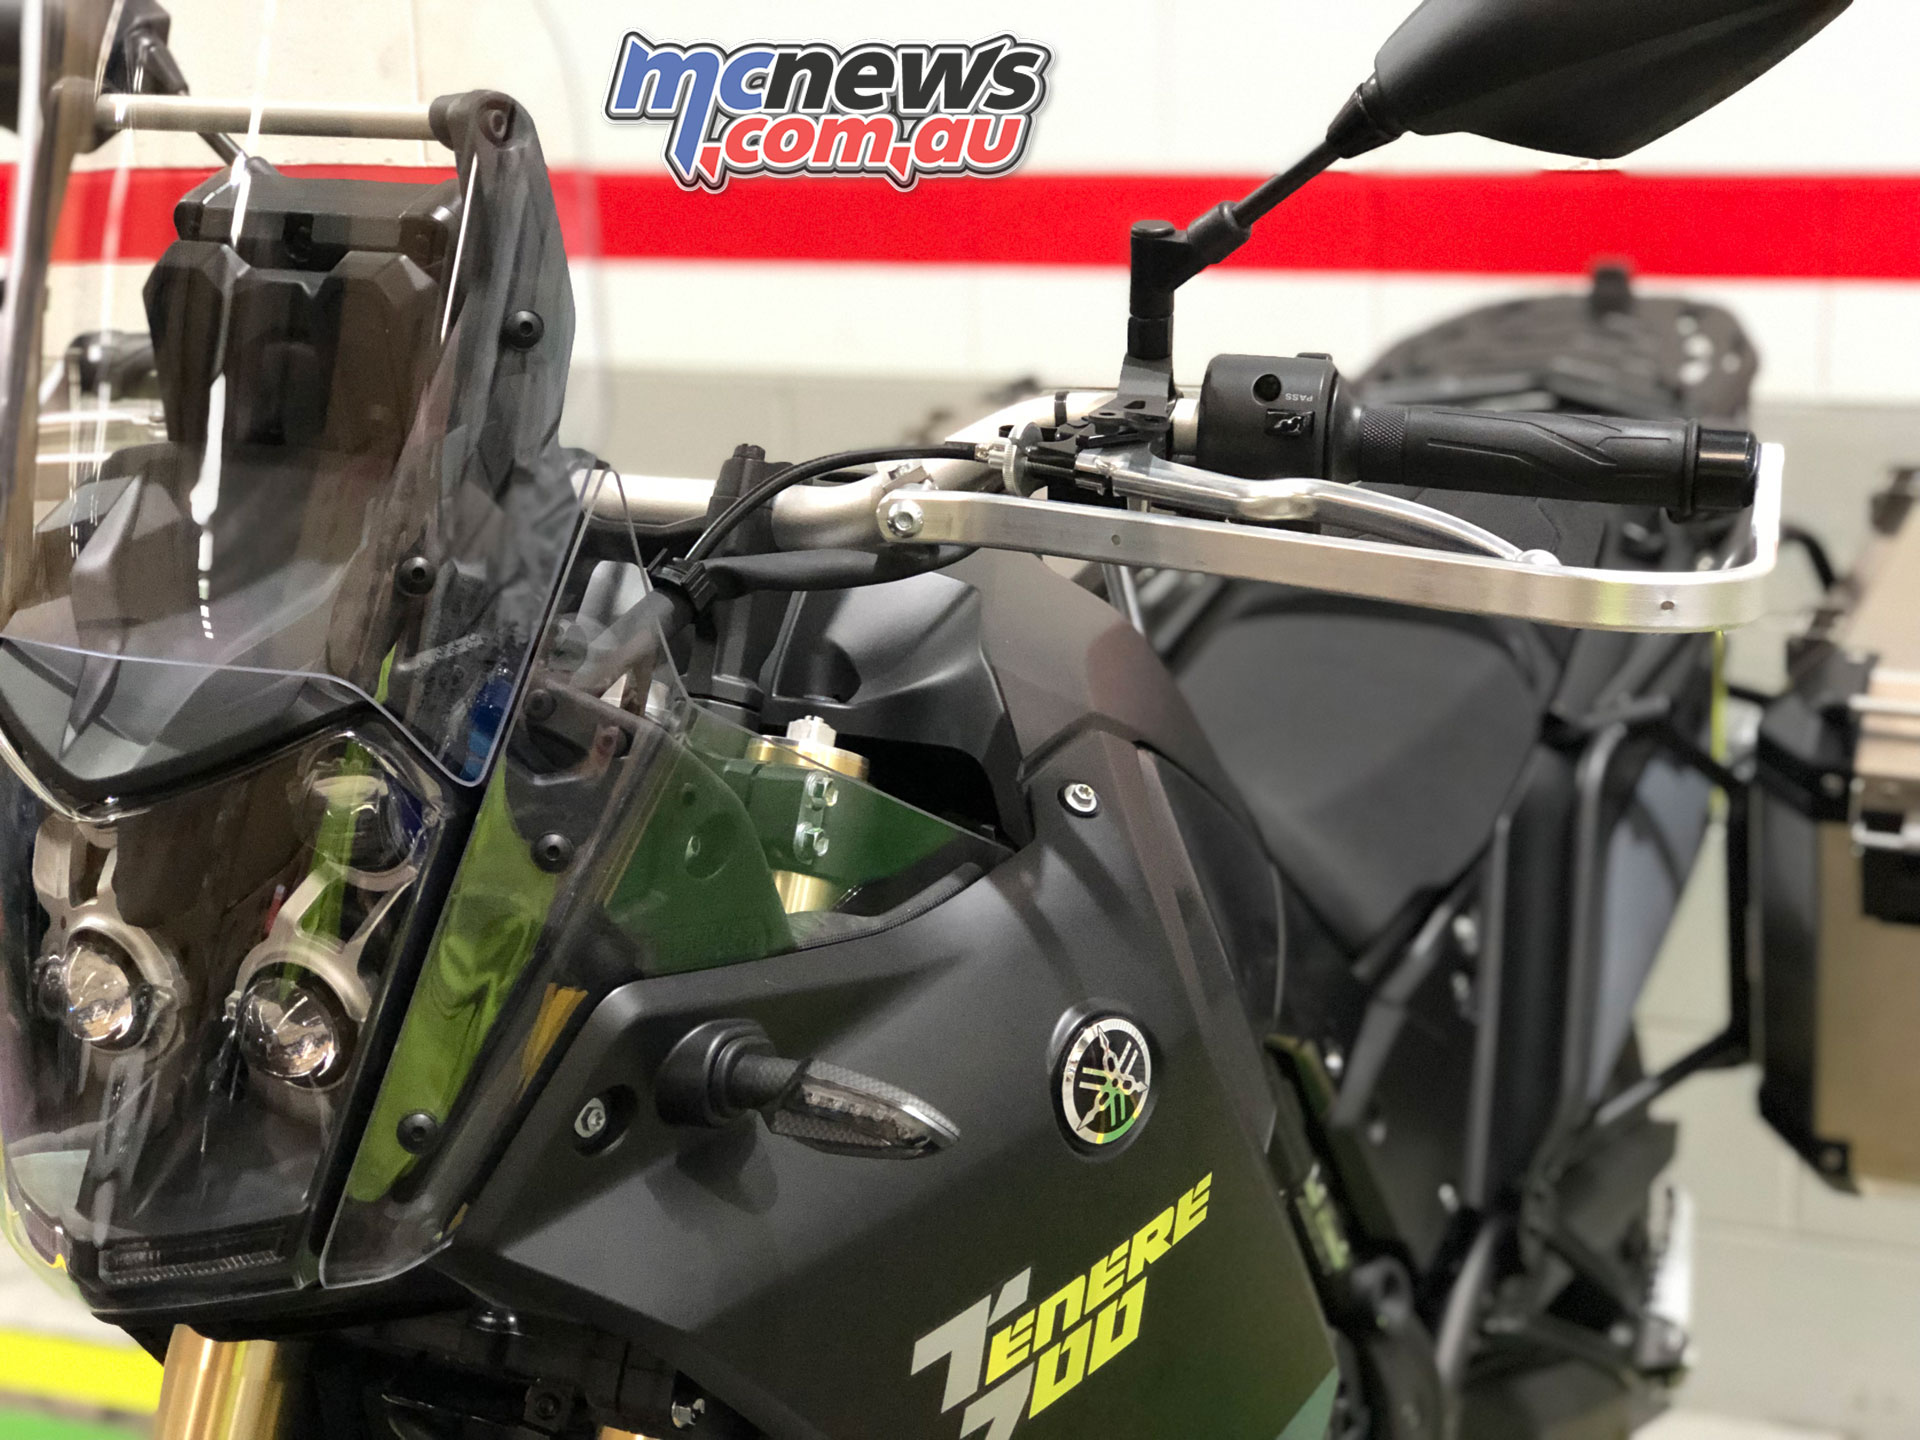 Barkbusters Yamaha Tenere T fitted with BHG hardware